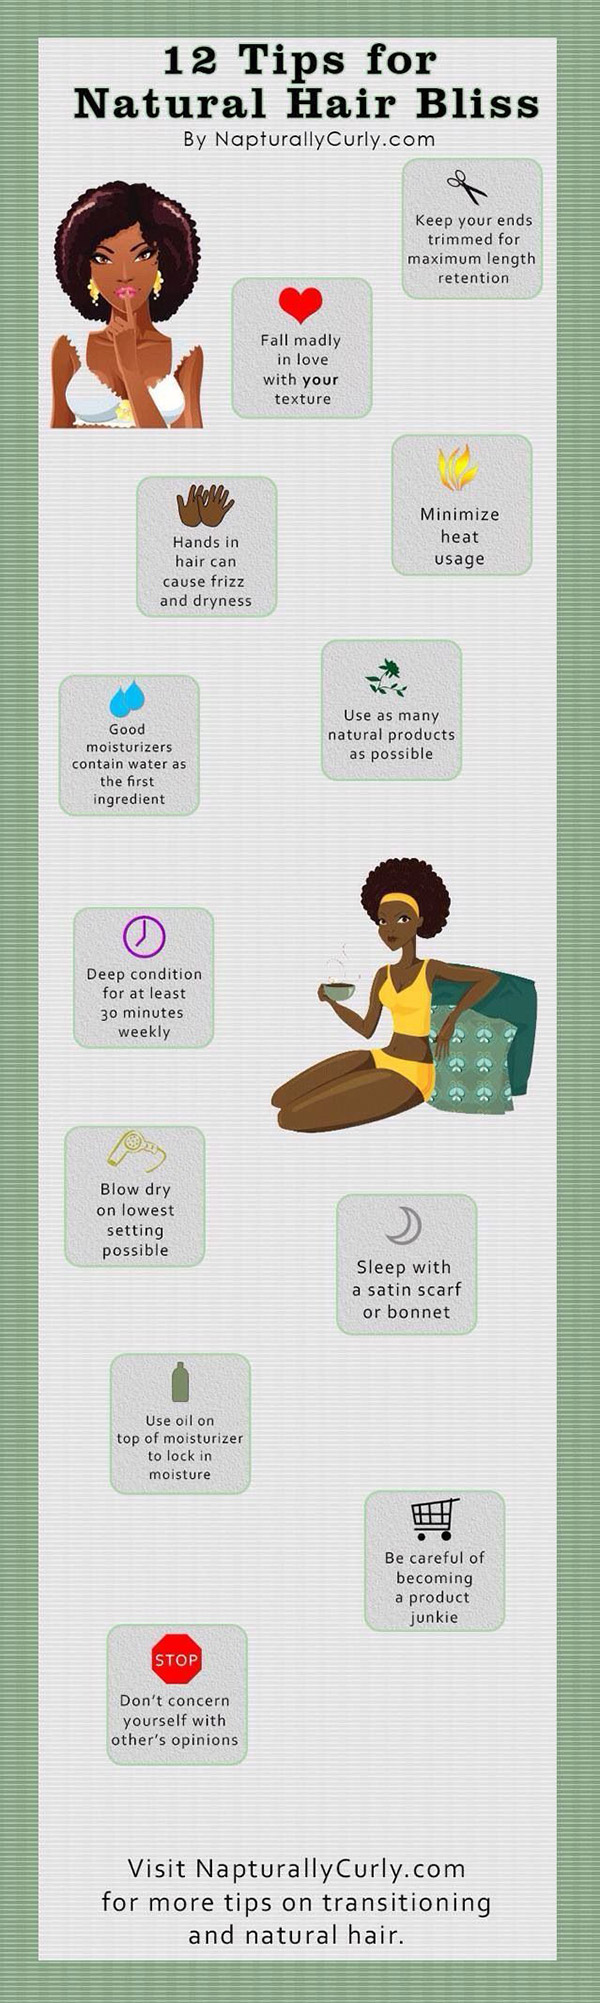 naturalhairtips4